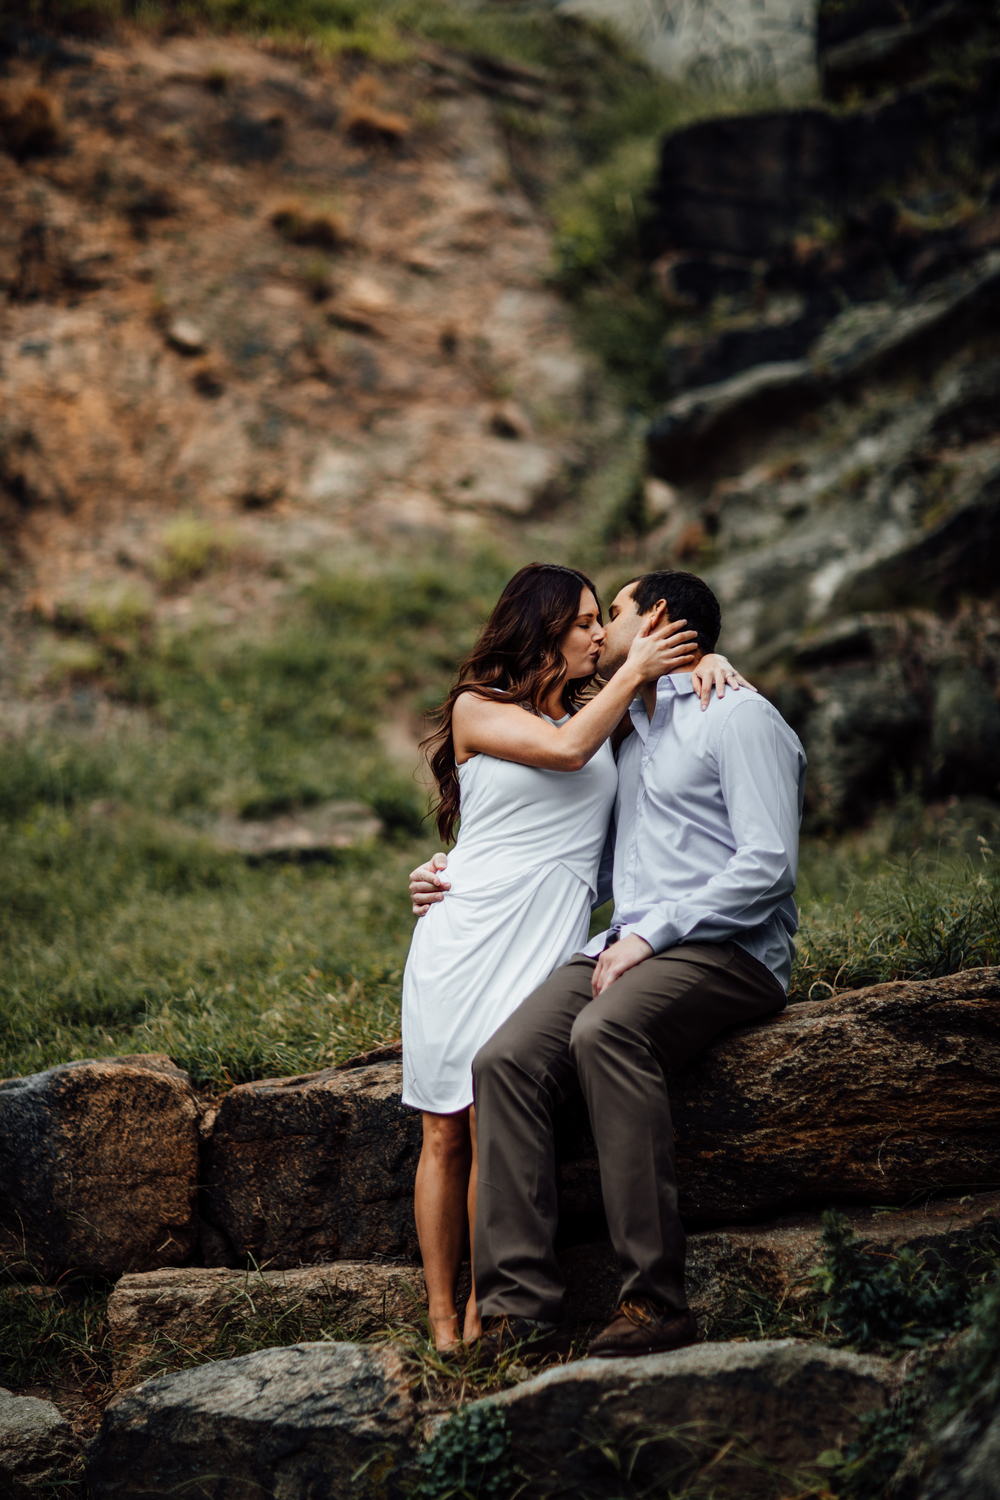 BRITTANYandKEVIN-Engagement2015 (8 of 115).jpg